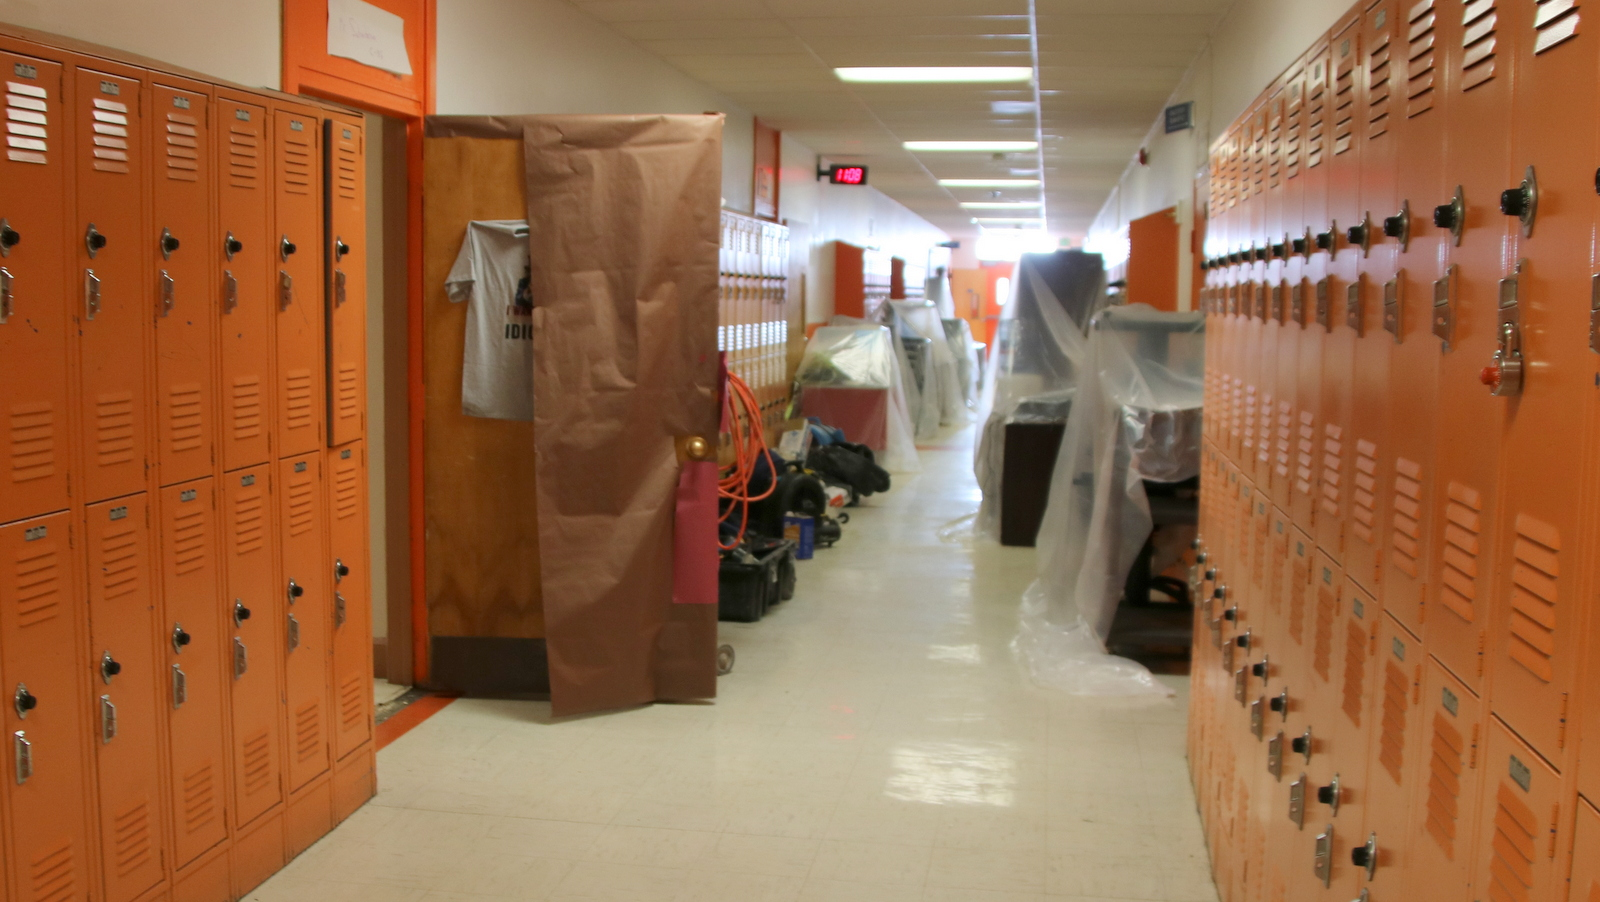 Desks, overhead projectors and other classroom items protected from leaks in the hallway at Frederick Douglass. (Fern Shen)